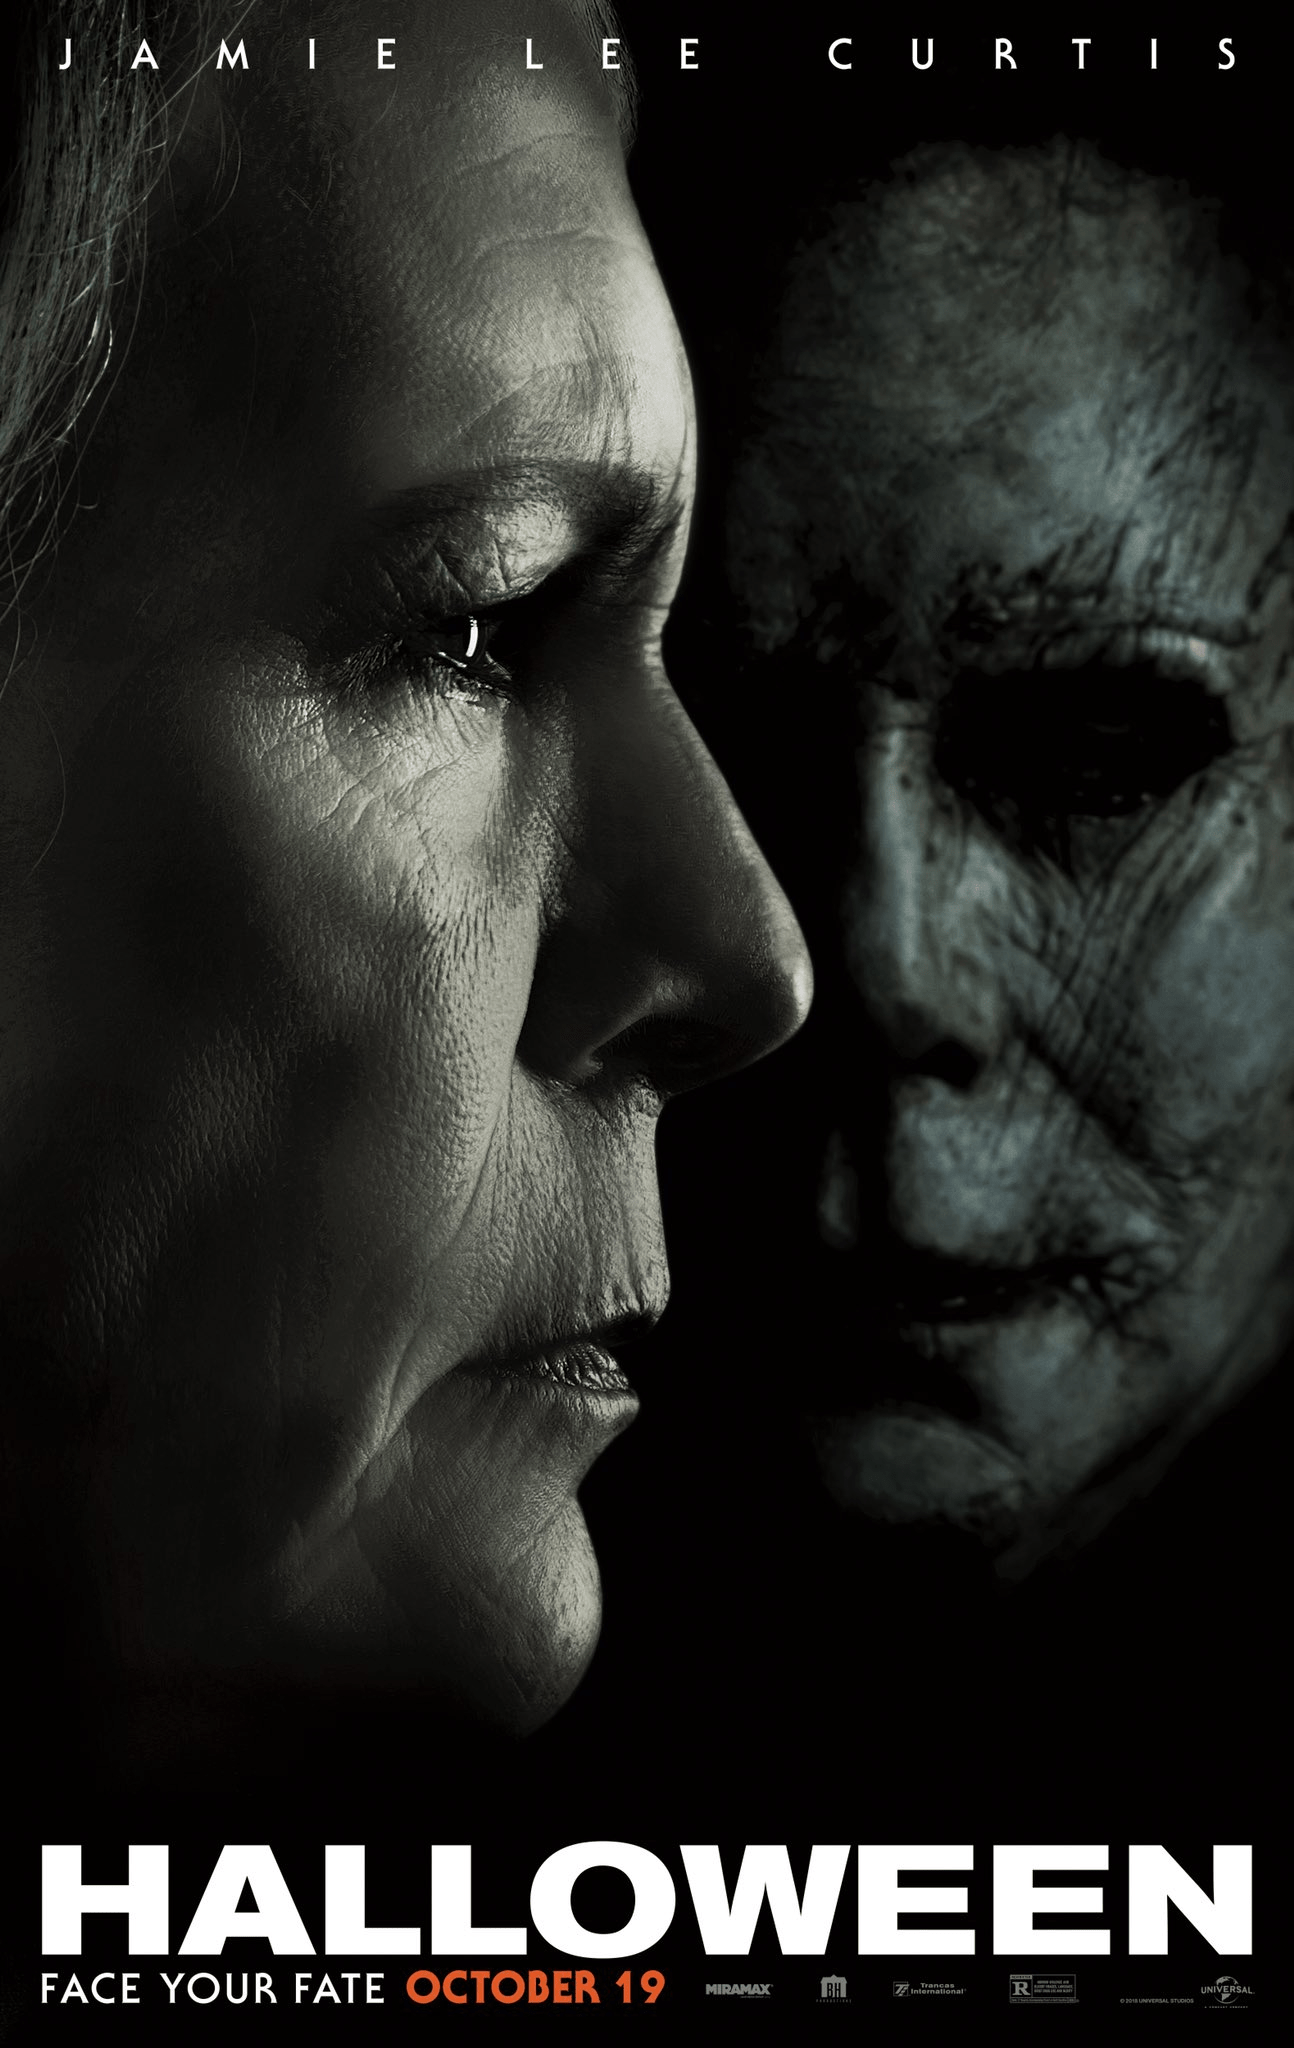 Laurie Strode Michael Myers 2018 Halloween Poster